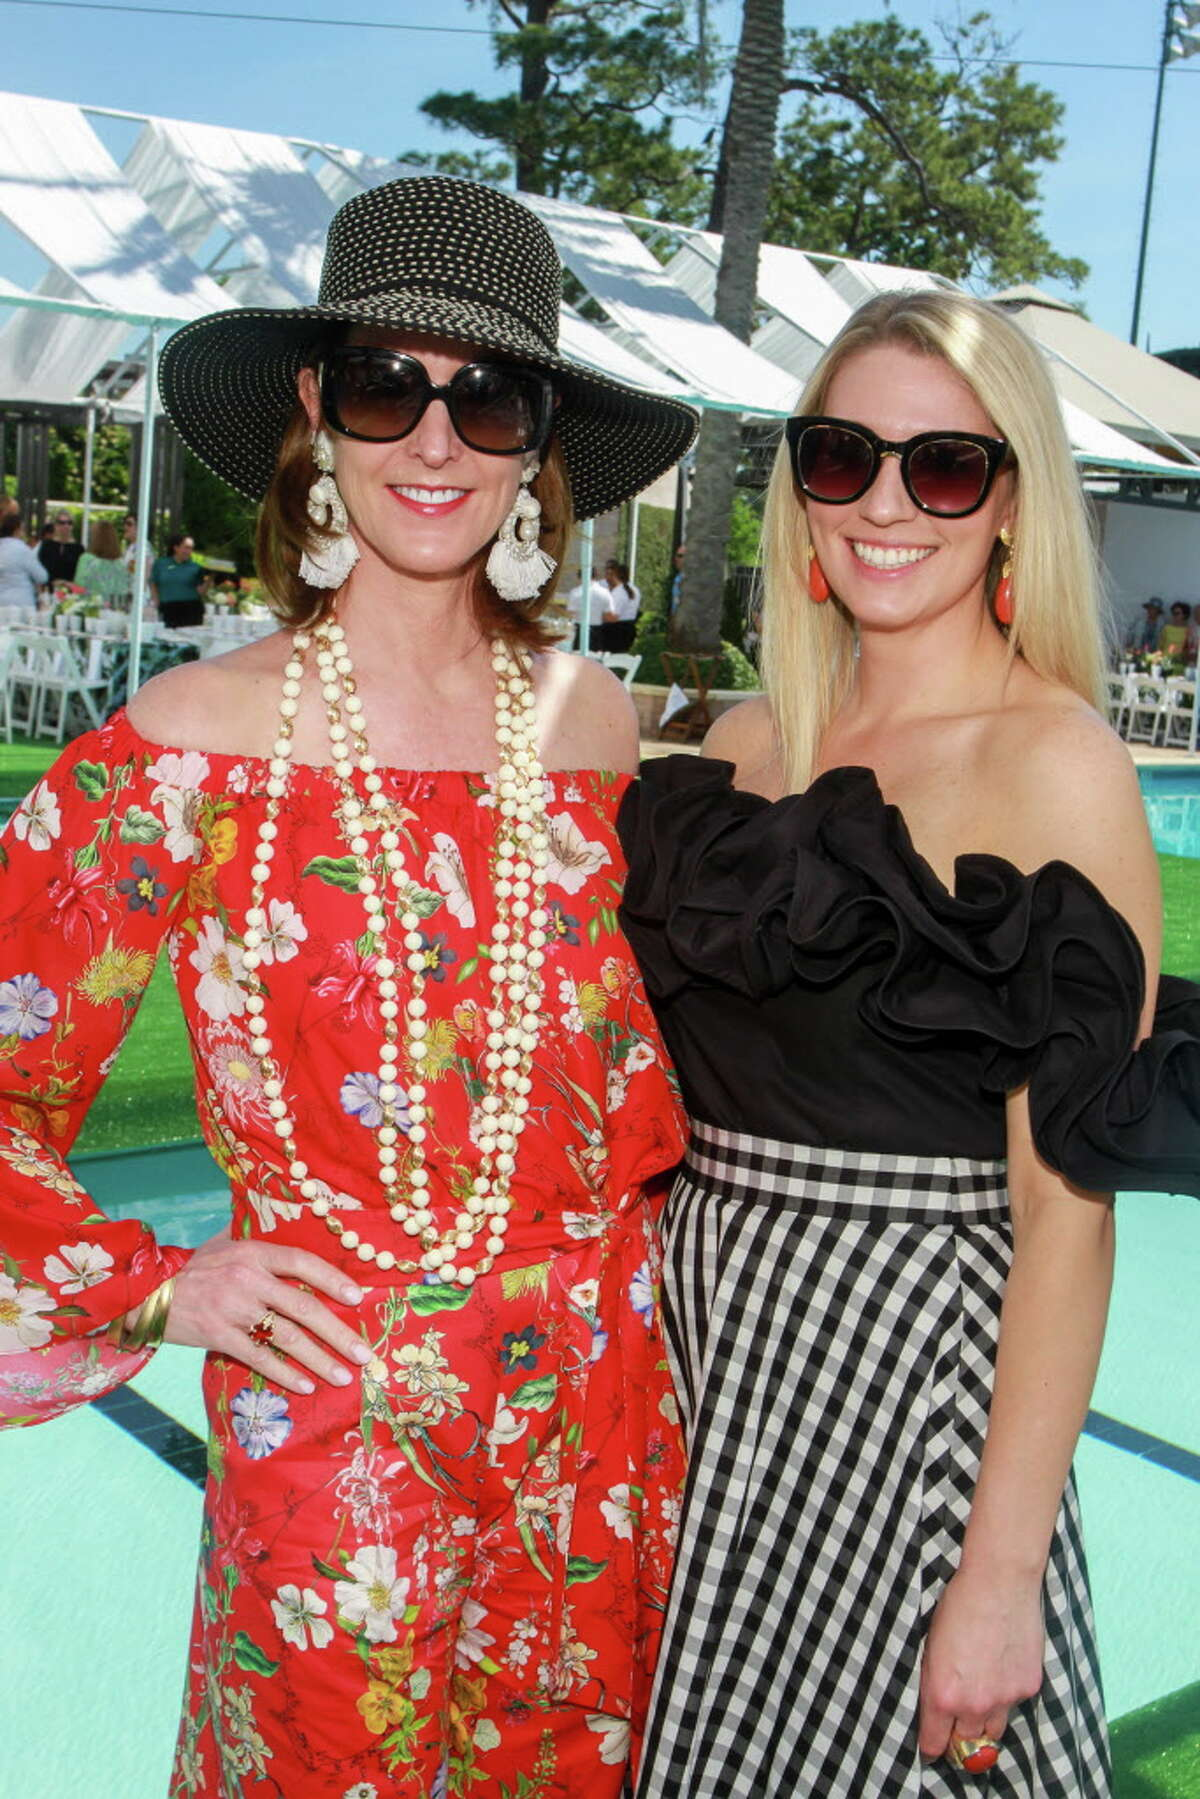 Phoebe Tudor, left, and Christina Stith at the Clay Court Tennis Fashion Show luncheon at River Oaks Country Club.